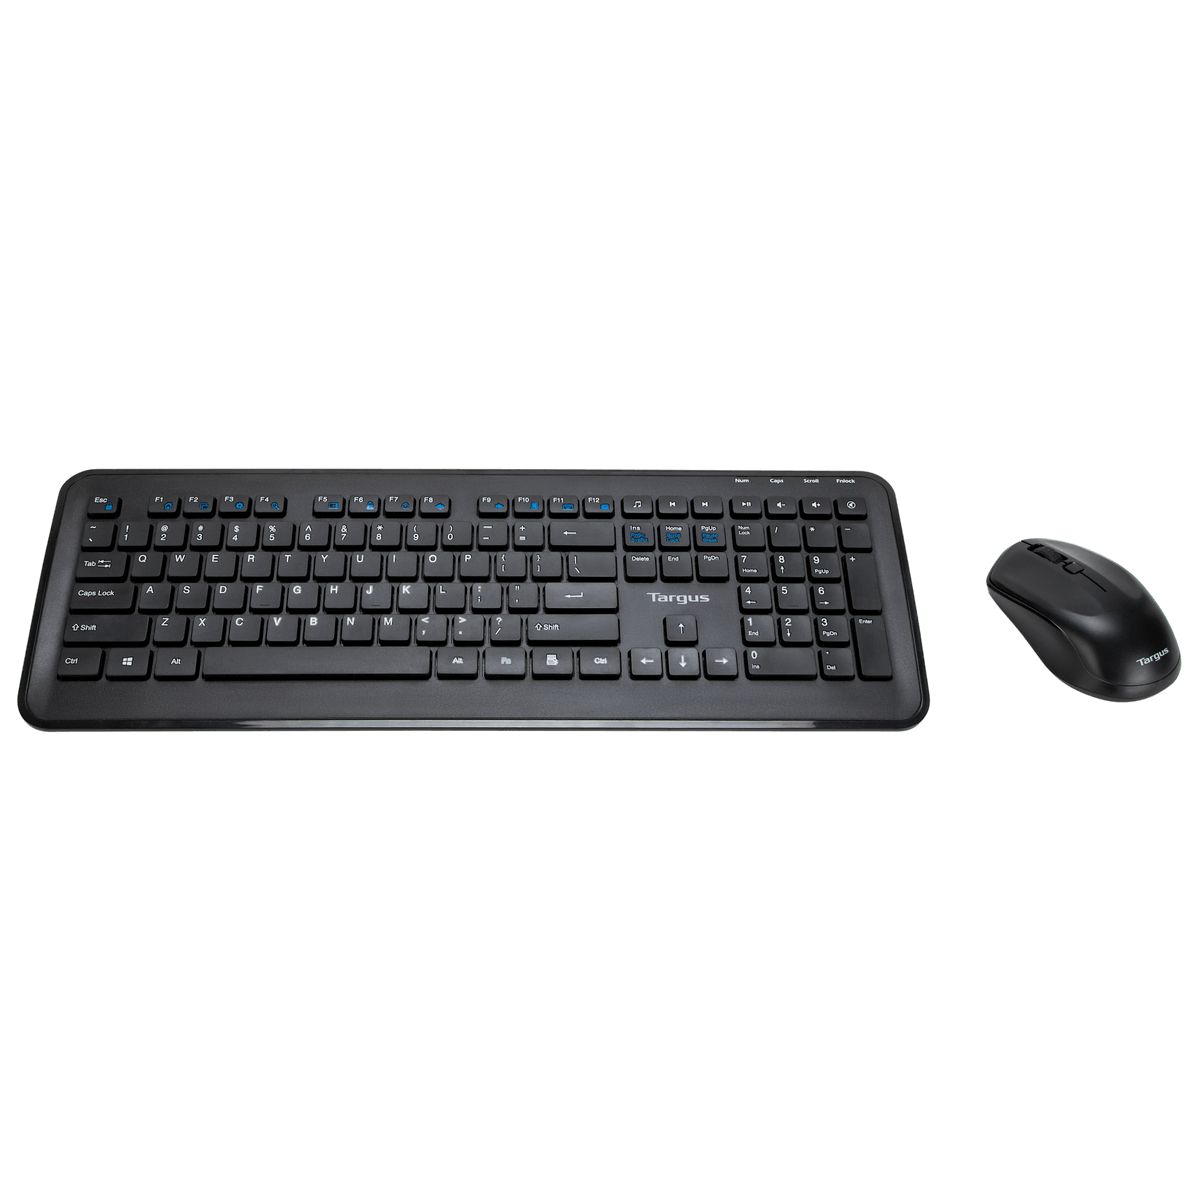 c21dae0cfbd Targus Official Store: Targus KM610 Wireless Keyboard and Mouse ...